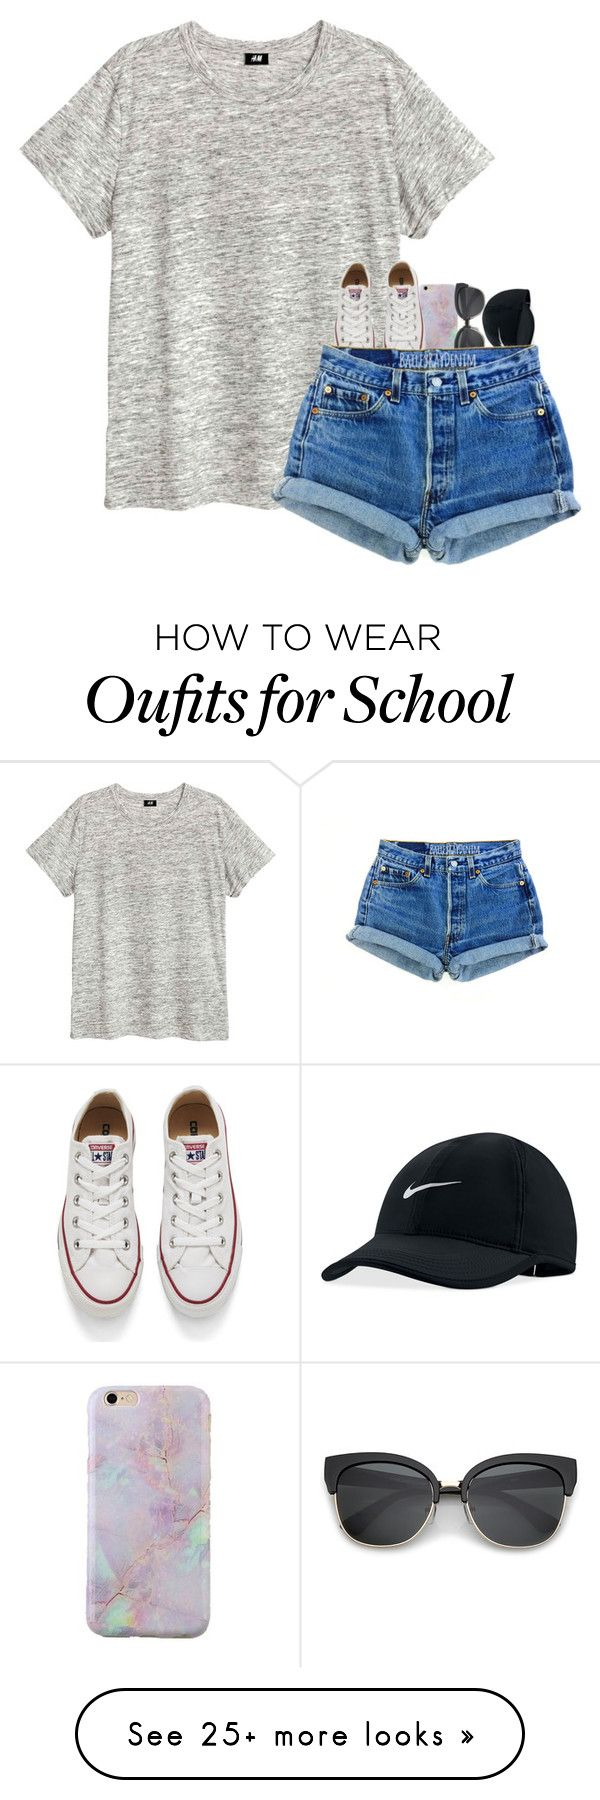 """c'mon be active for more posts :)"" by ellerlou on Polyvore featuring NIKE and Converse"